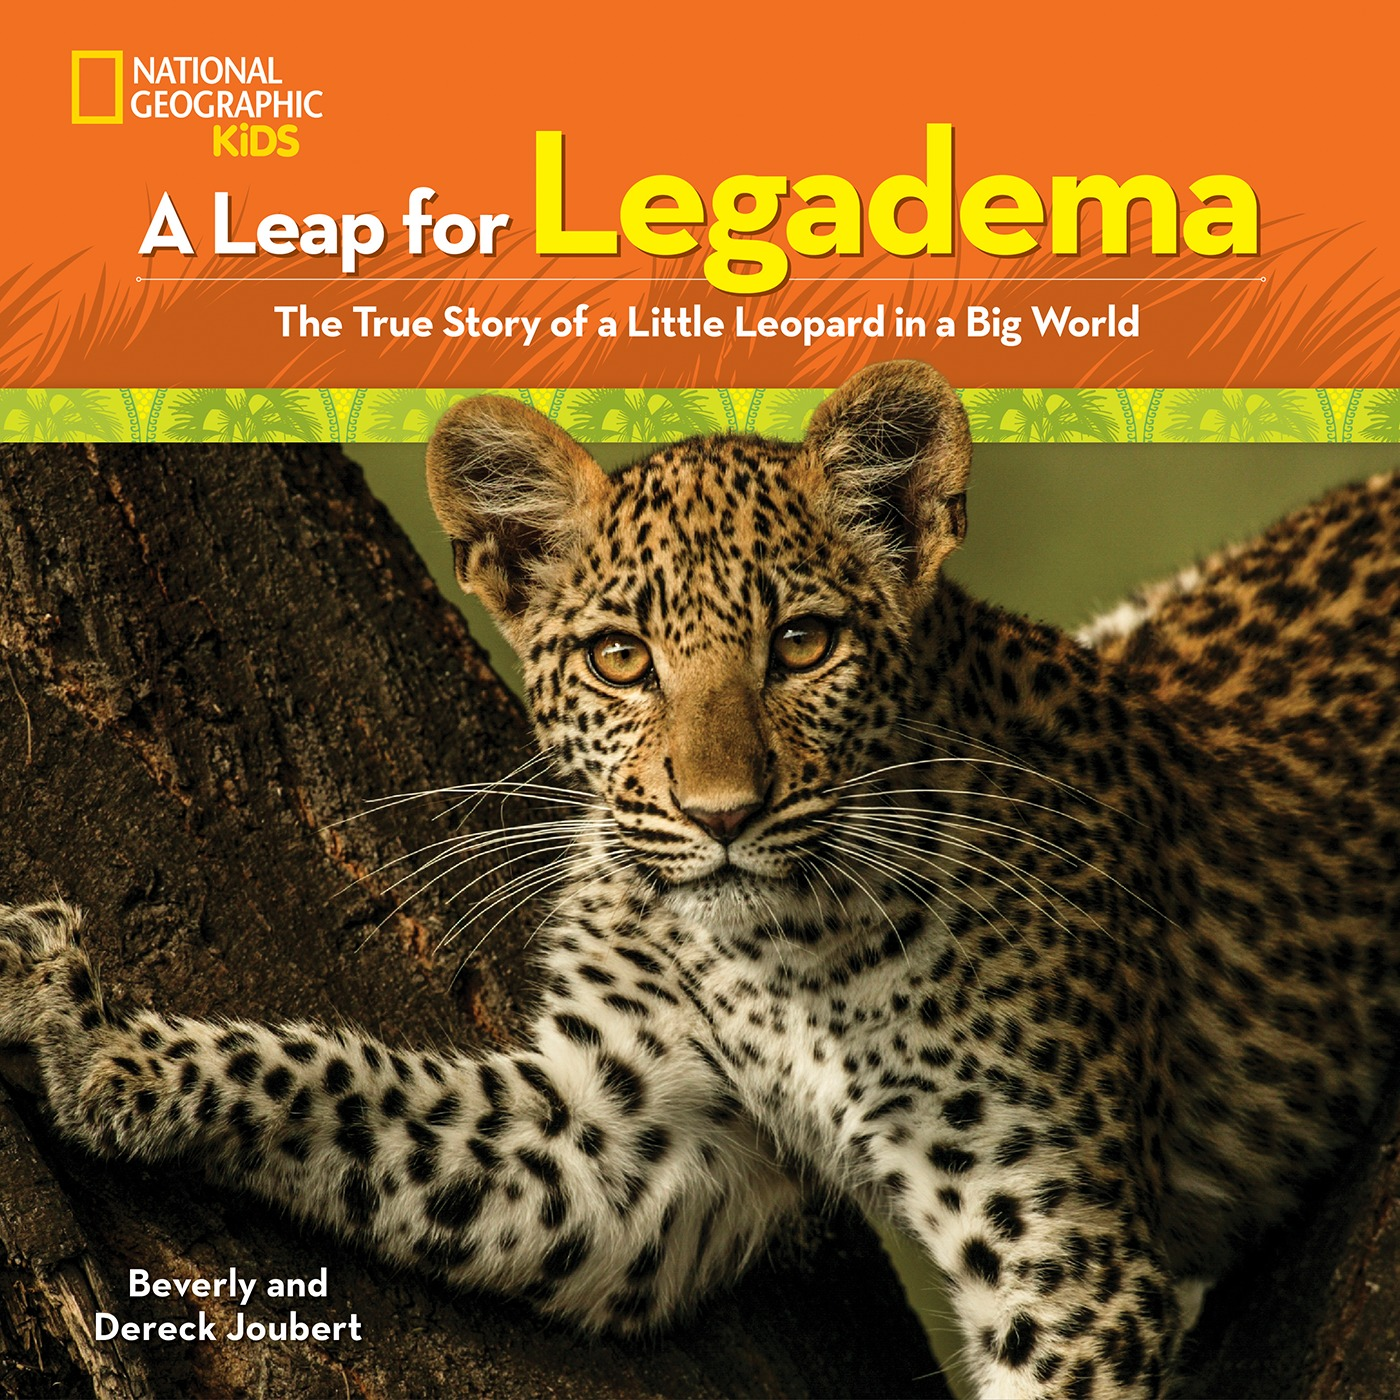 A Leap for Legadema : The True Story of a Little Leopard in a Big World